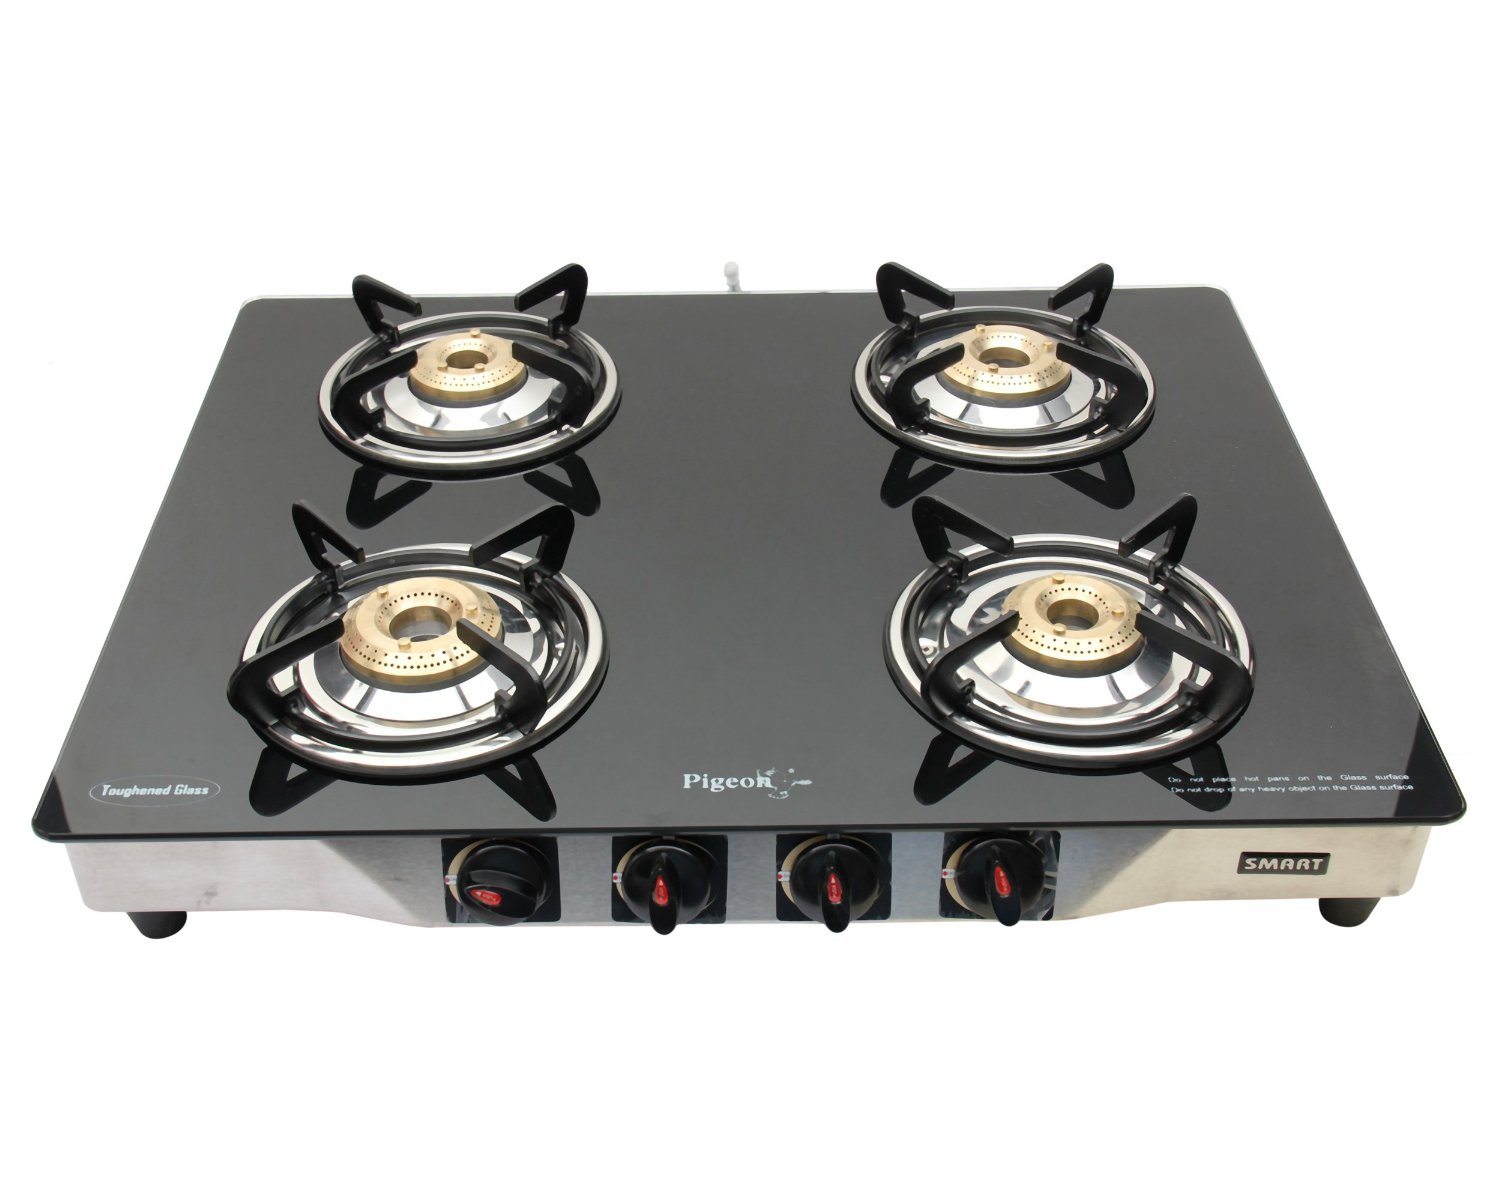 Smart Stainless Steel 4 Burner Gas Stove Worth Rs 6990 For Rs 3999